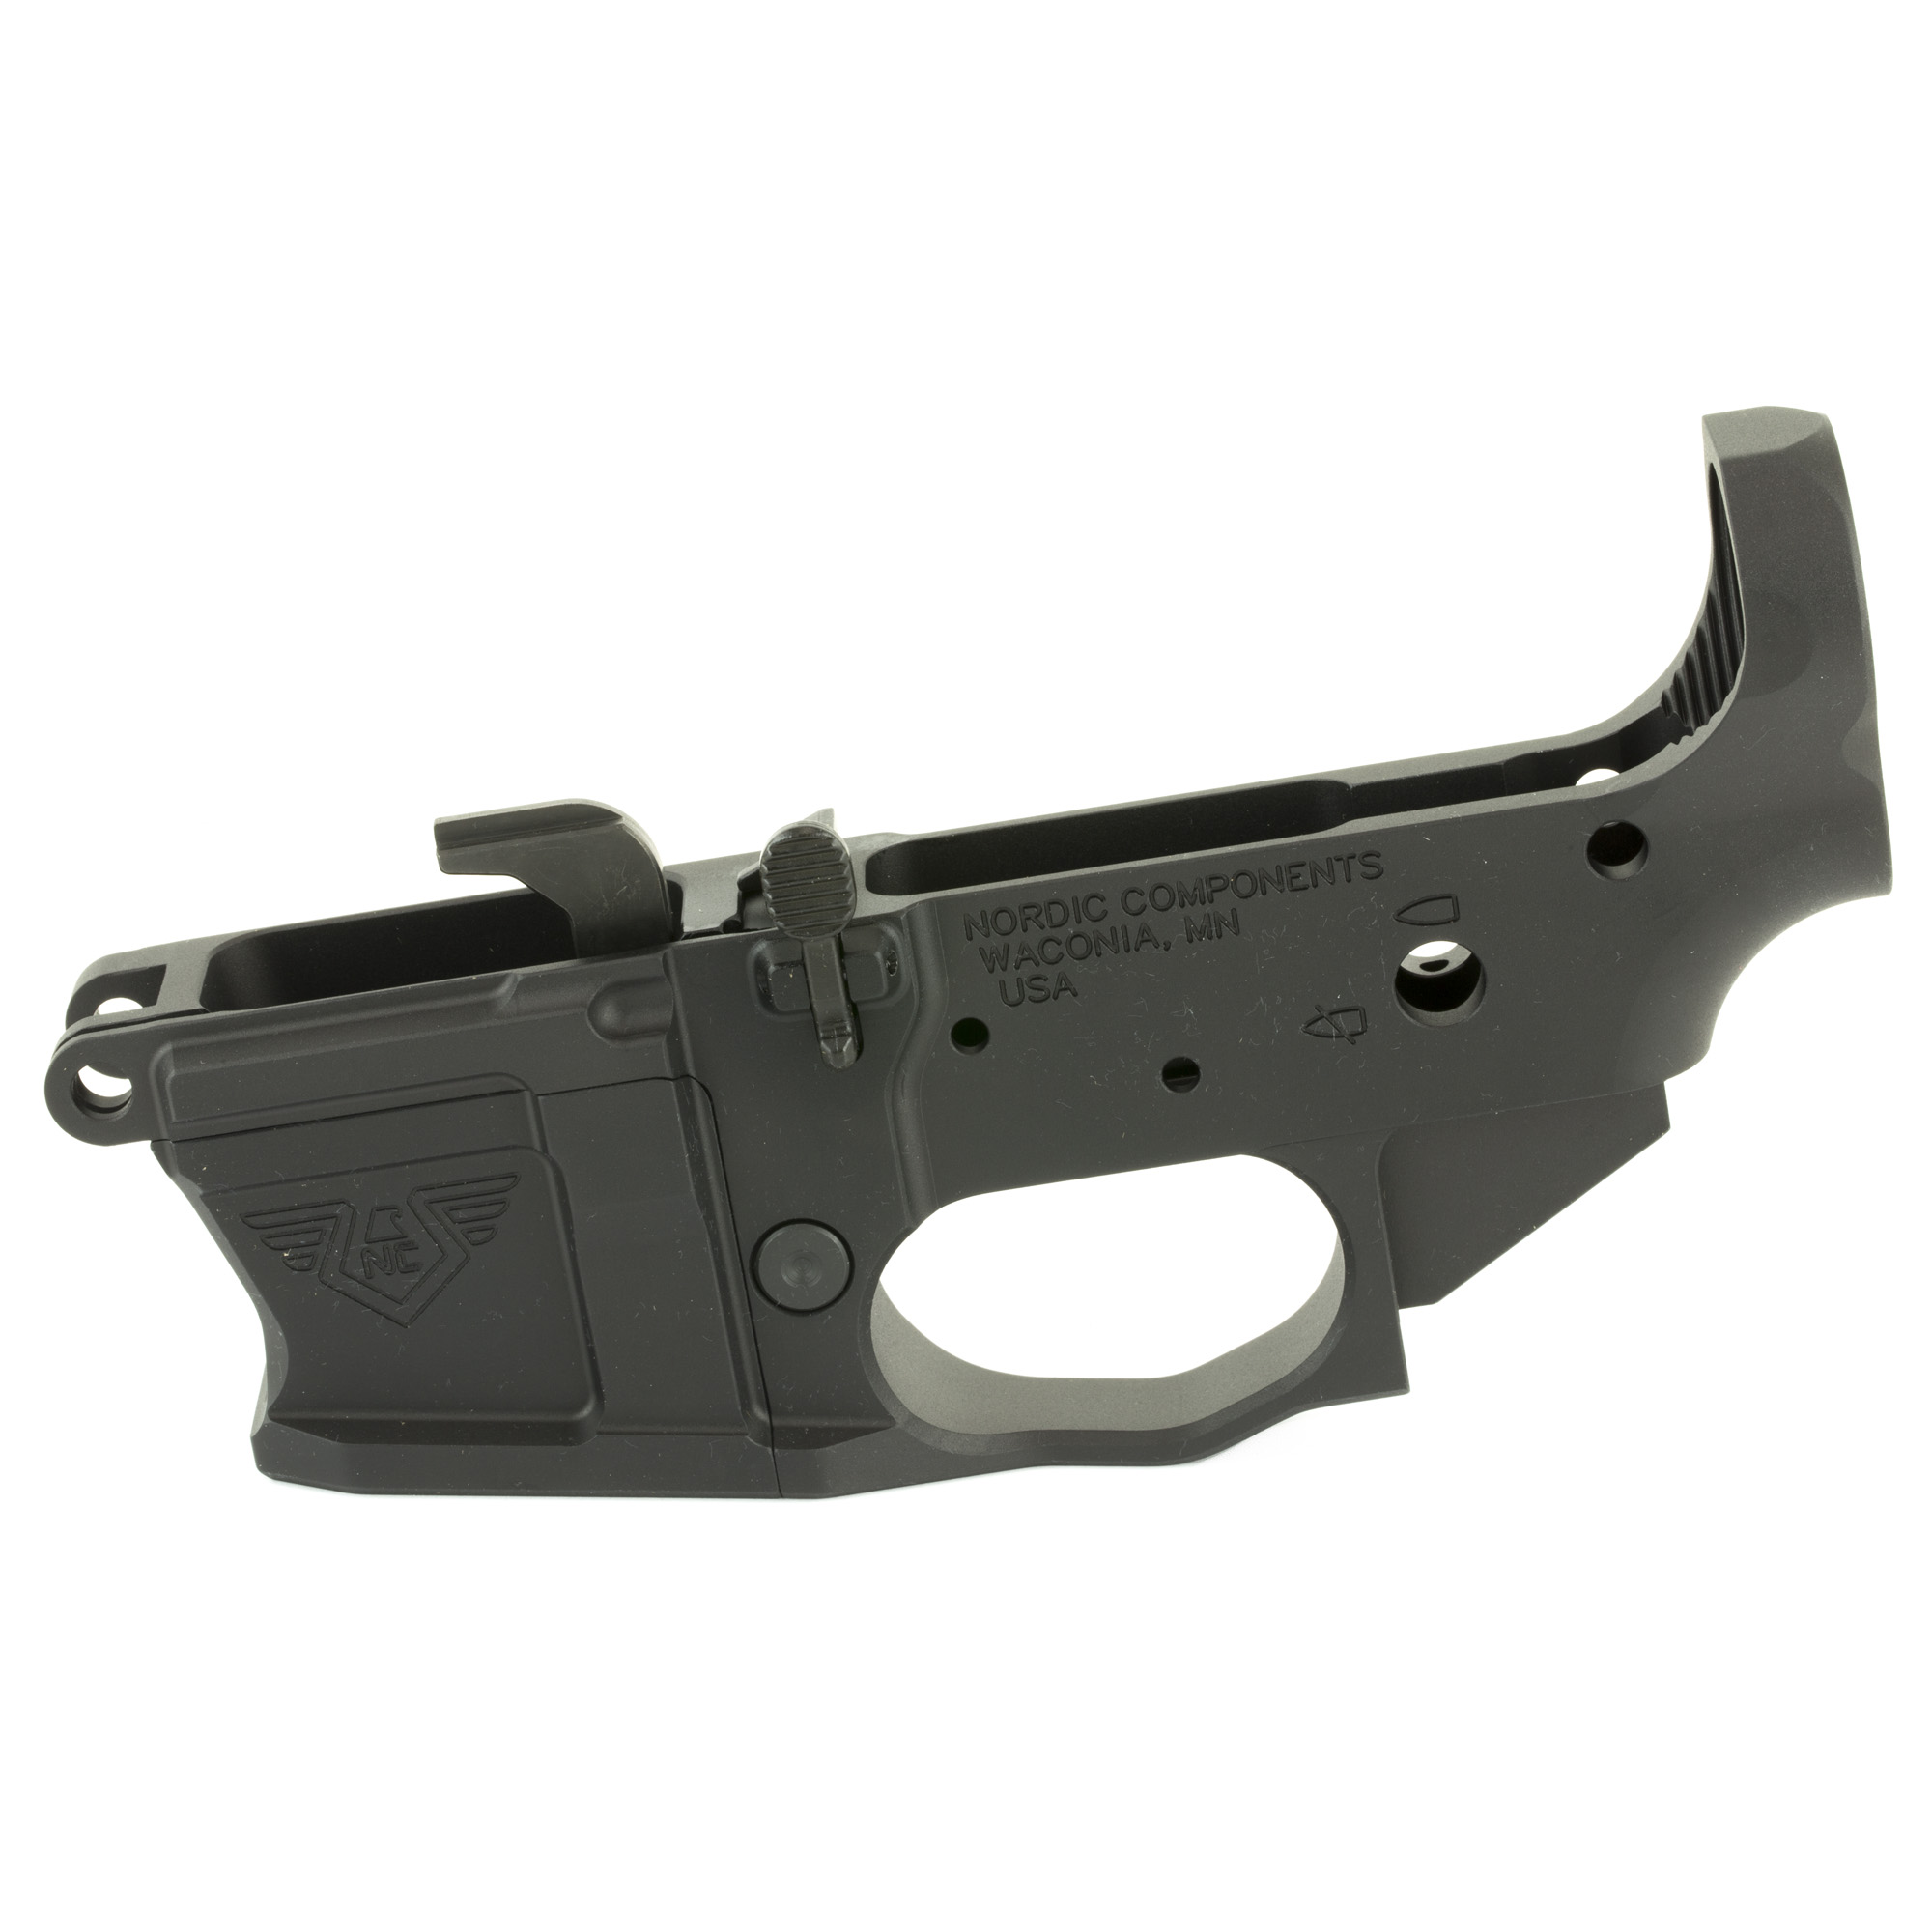 """Now available for the shooter who wants to assemble and configure the NCPCC from the ground up"""" the NCPCC lower receiver assembly includes the receiver"""" one magwell of your choice"""" and all the proprietary components. You will not need bolt catch/plunger/spring and trigger guard. The NCPCC lower receiver is compatible with most standard AR-pattern components and accessories"""" and features the same modularity for which the complete firearm is known."""